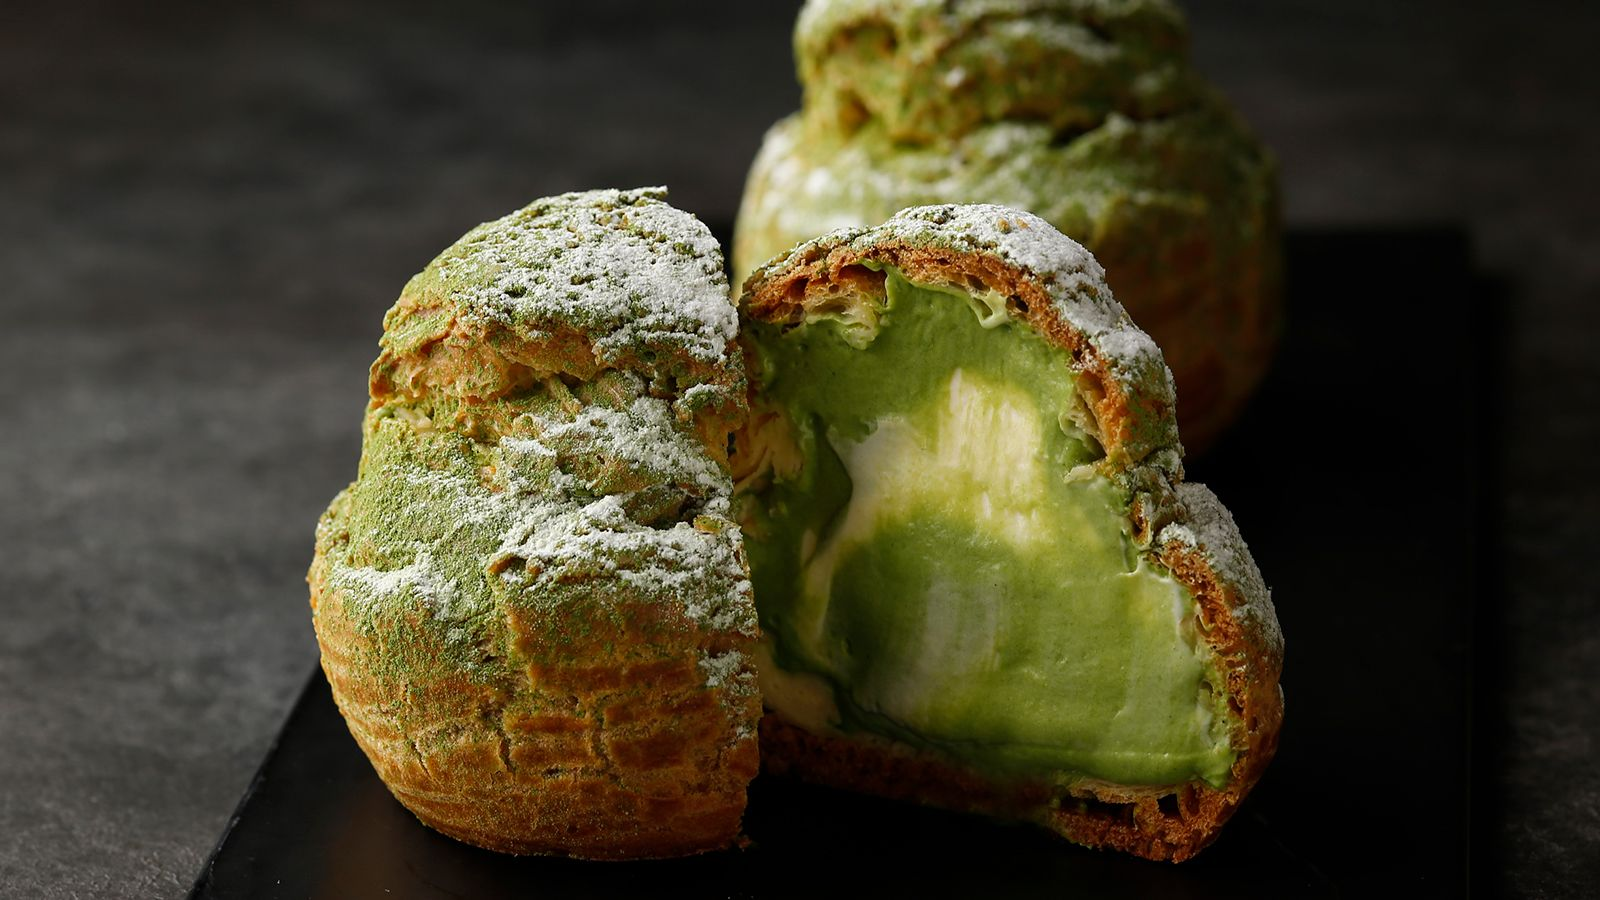 Maccha Green Tea Cream Puffs